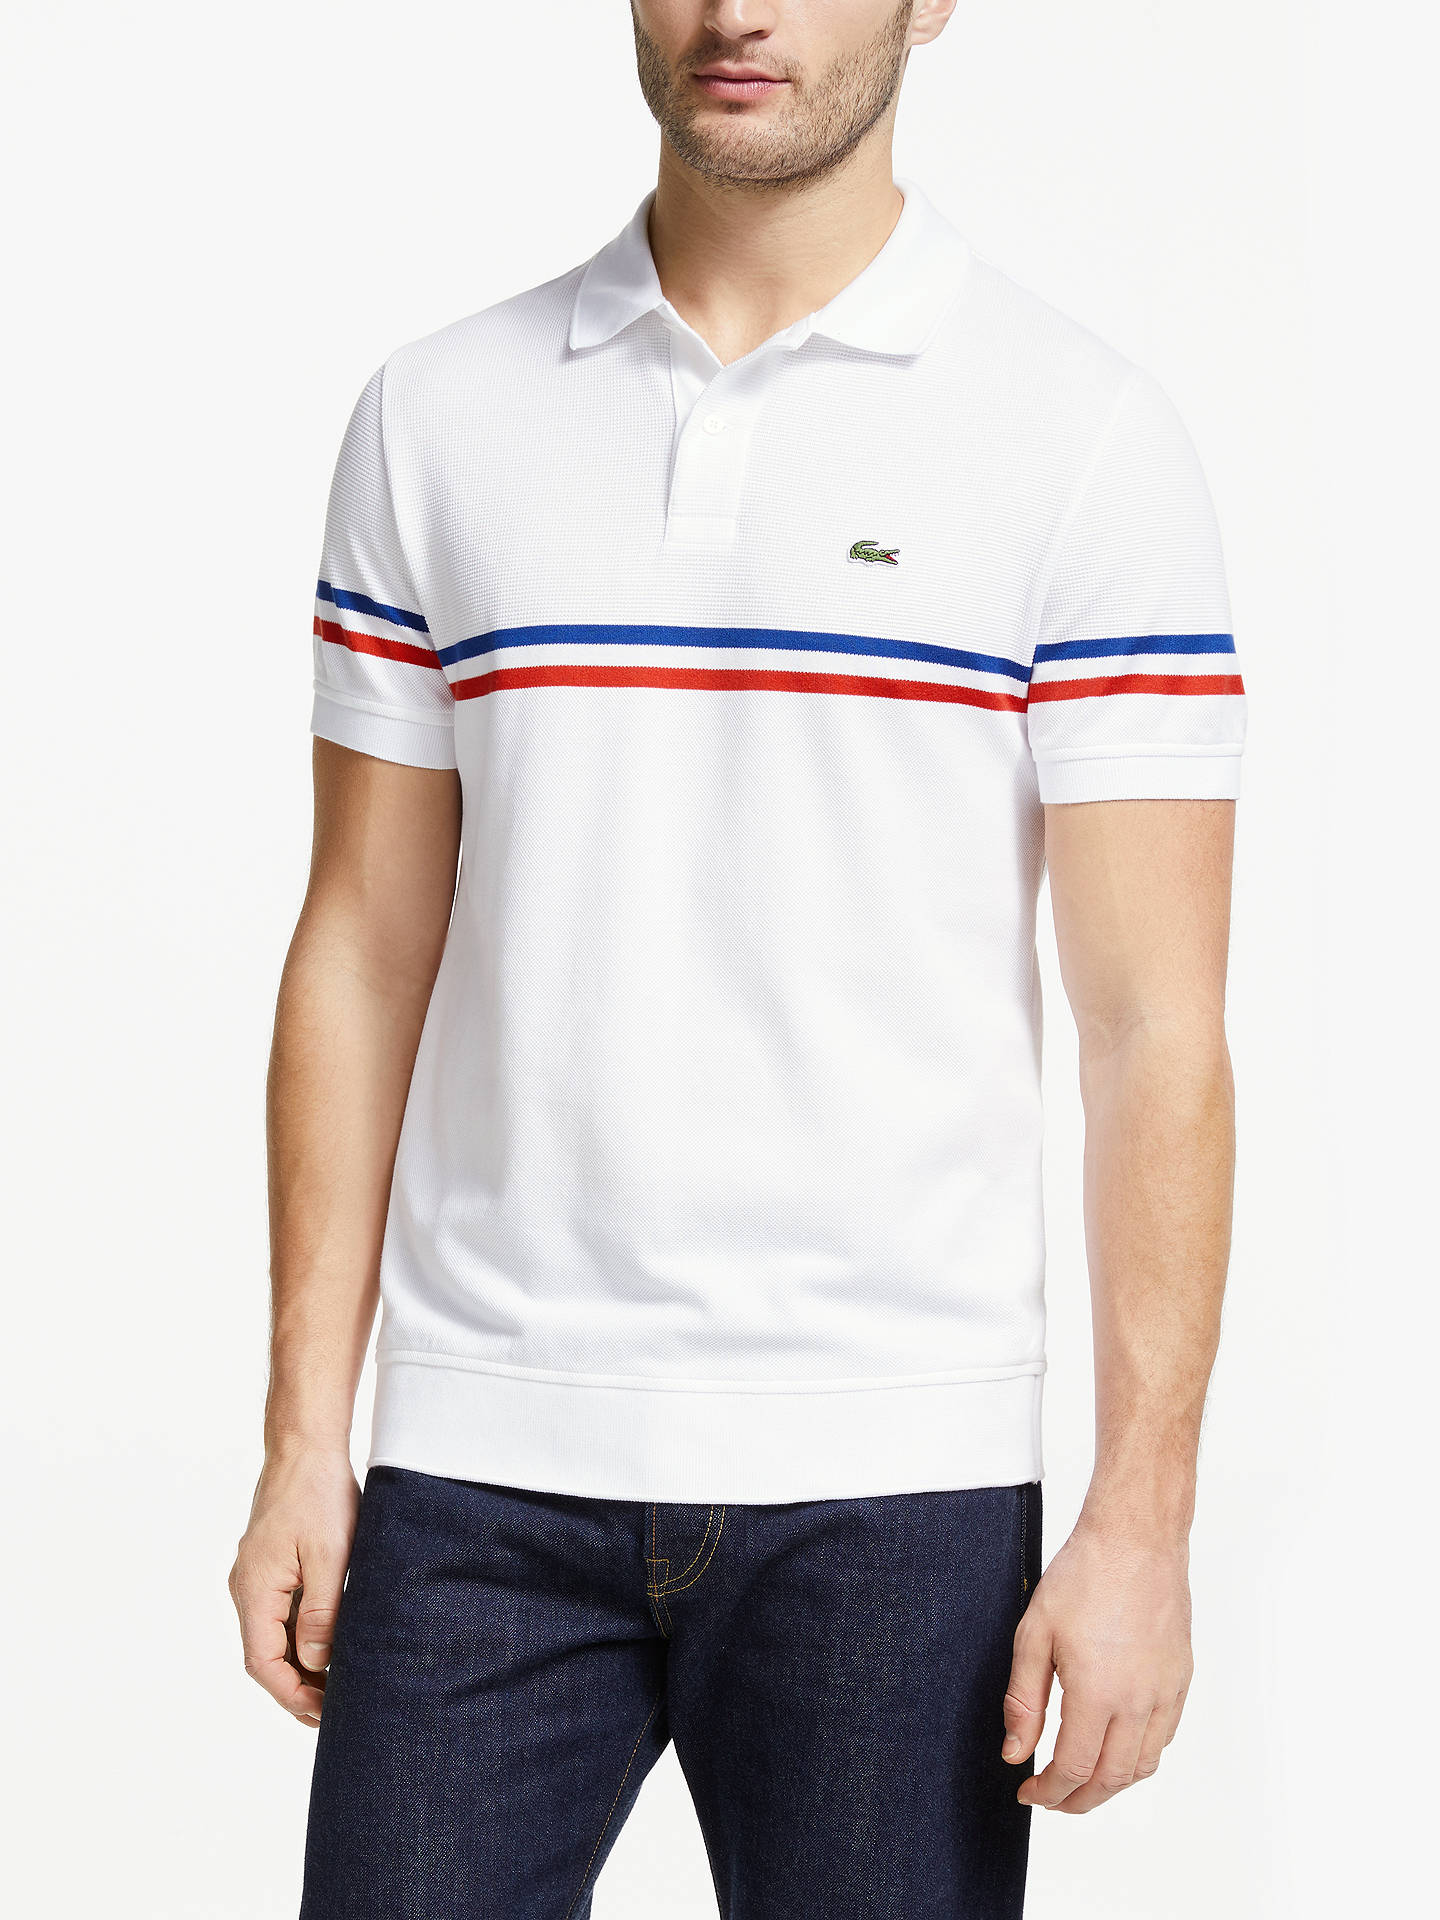 5912232e2 Buy Lacoste Made in France Short Sleeve Polo Shirt, White, M Online at  johnlewis ...